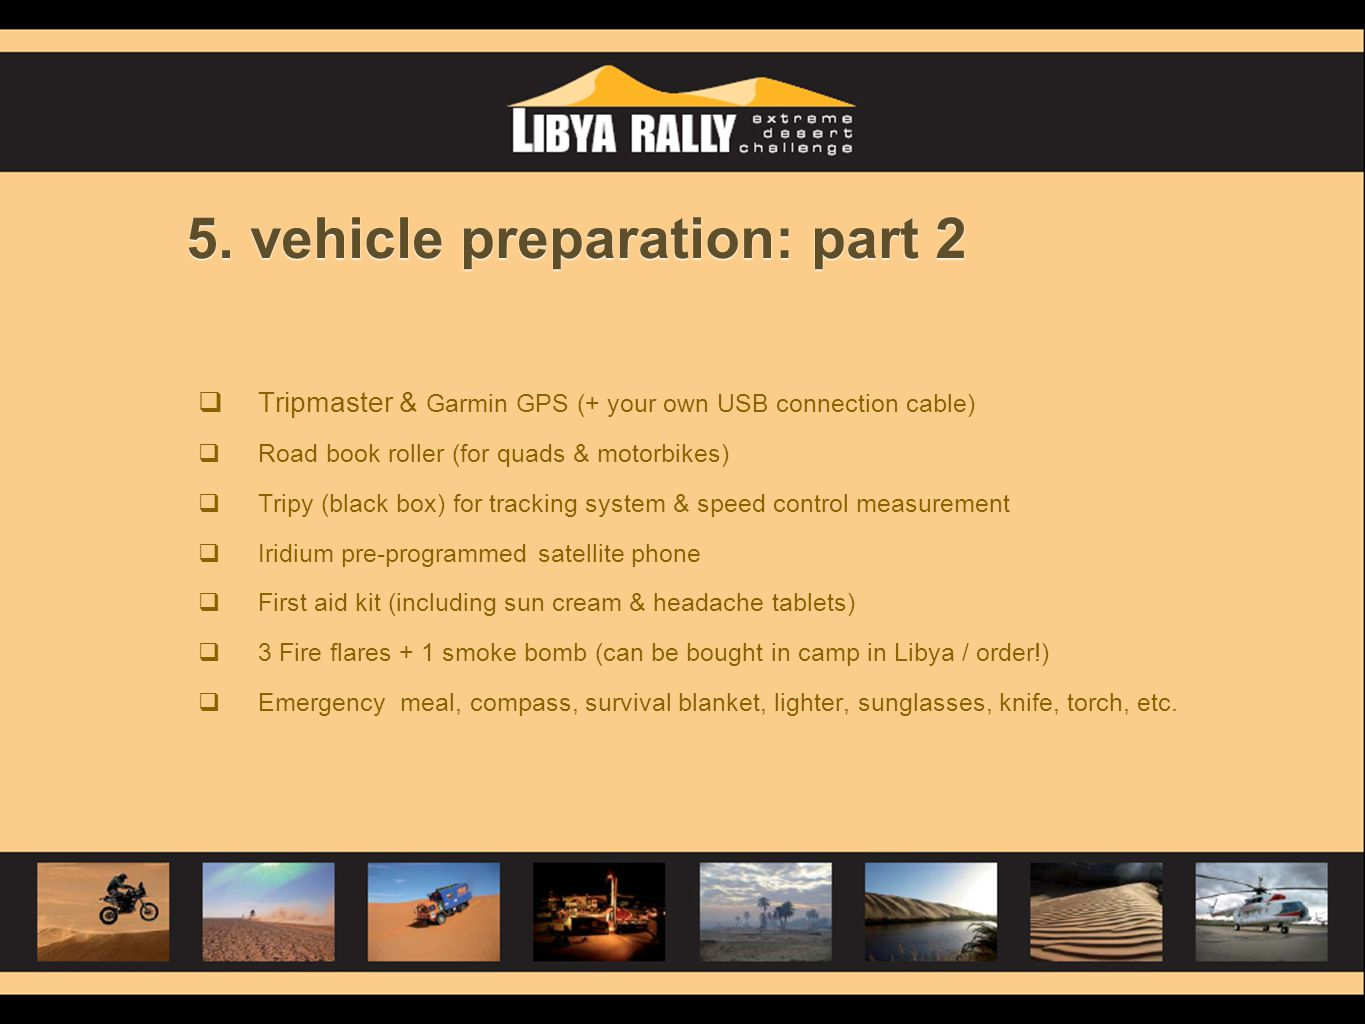 5. vehicle preparation: part 2